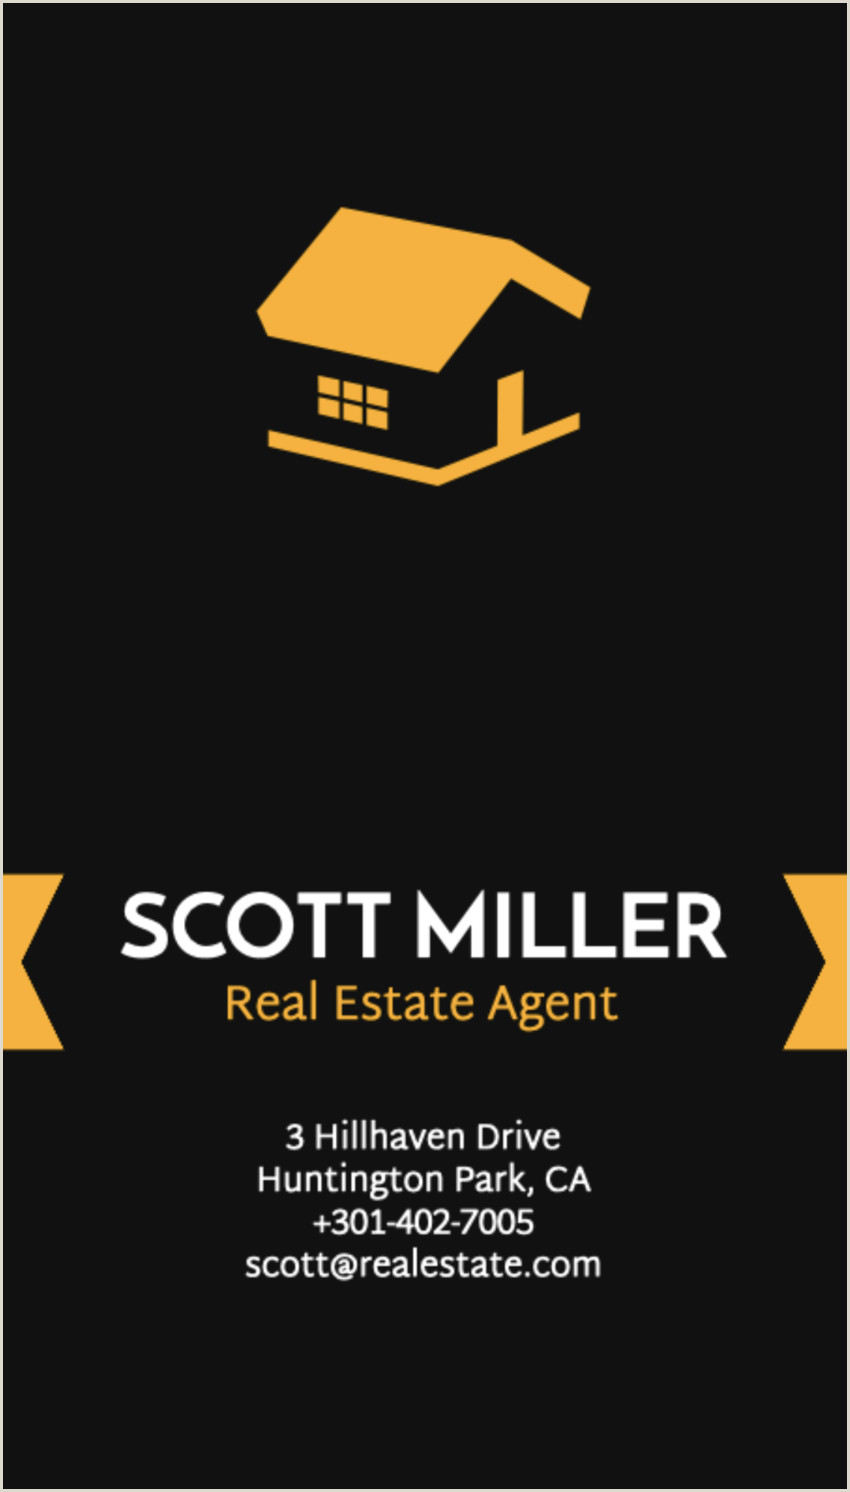 Awesome Real Estate Business Cards 25 Best Real Estate Business Card Designs Unique Ideas For